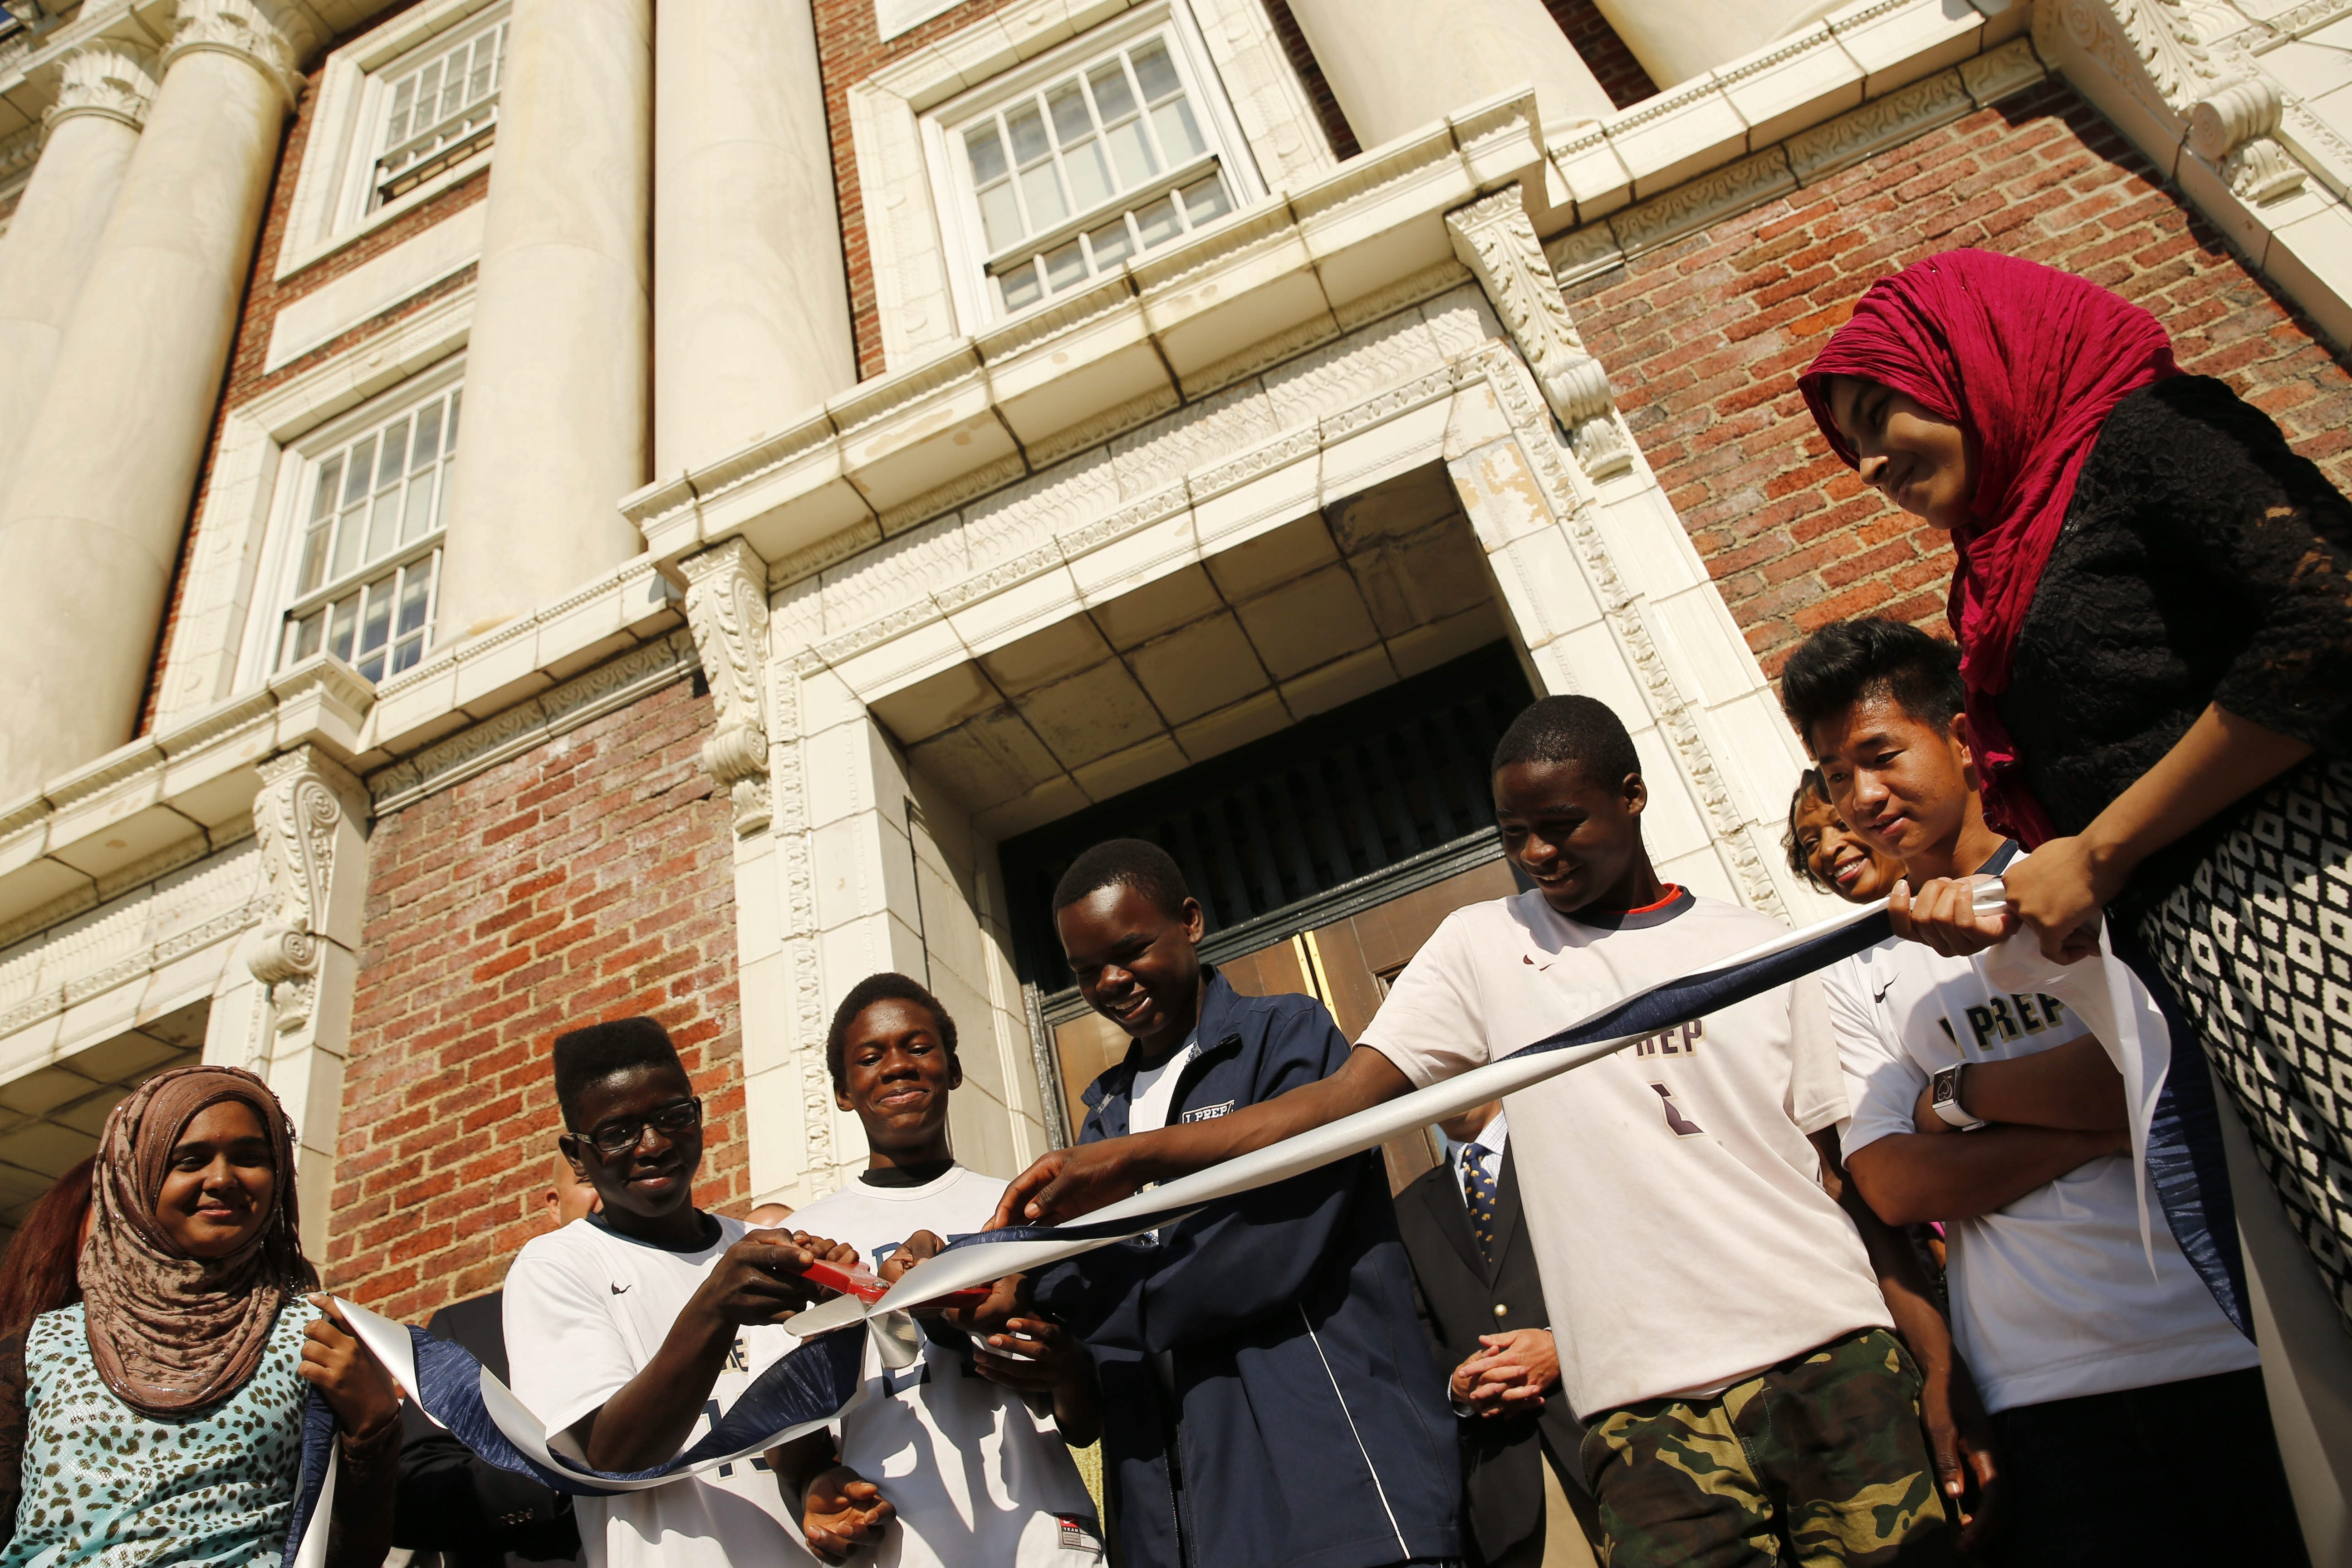 Students cut a ribbon Monday morning during a ceremony to officially unveil the renovations at International Preparatory School 198 at the former Grover Cleveland High School on Buffalo's lower West Side. See a photo gallery at BuffaloNews.com.